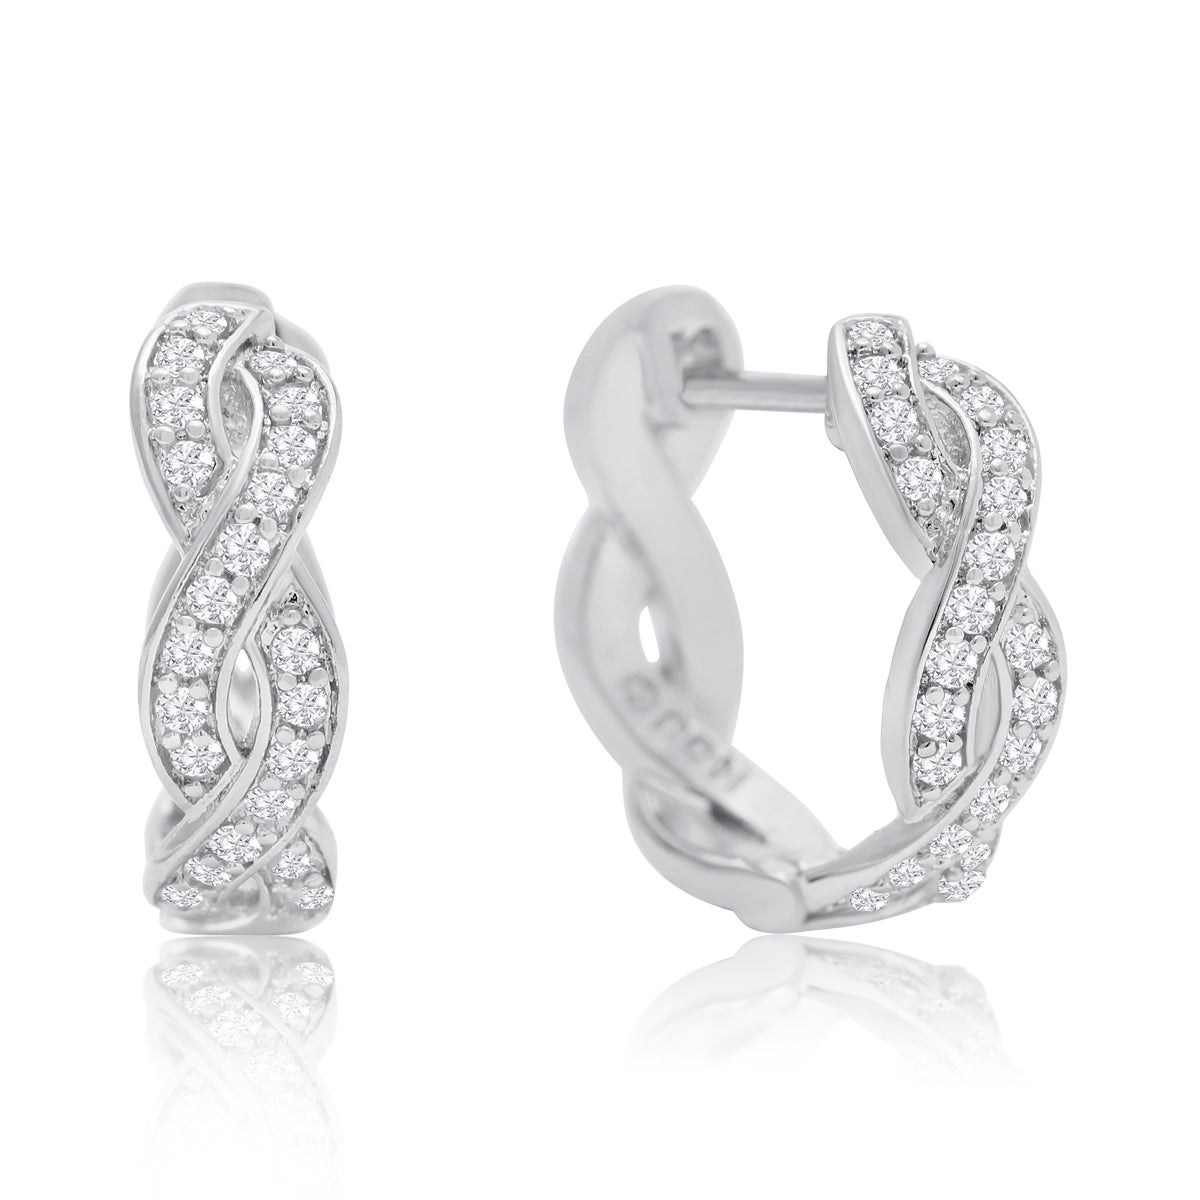 in jewelry snap overstock sterling today shipping product watches hidden earrings silver free back hoop backs diamond